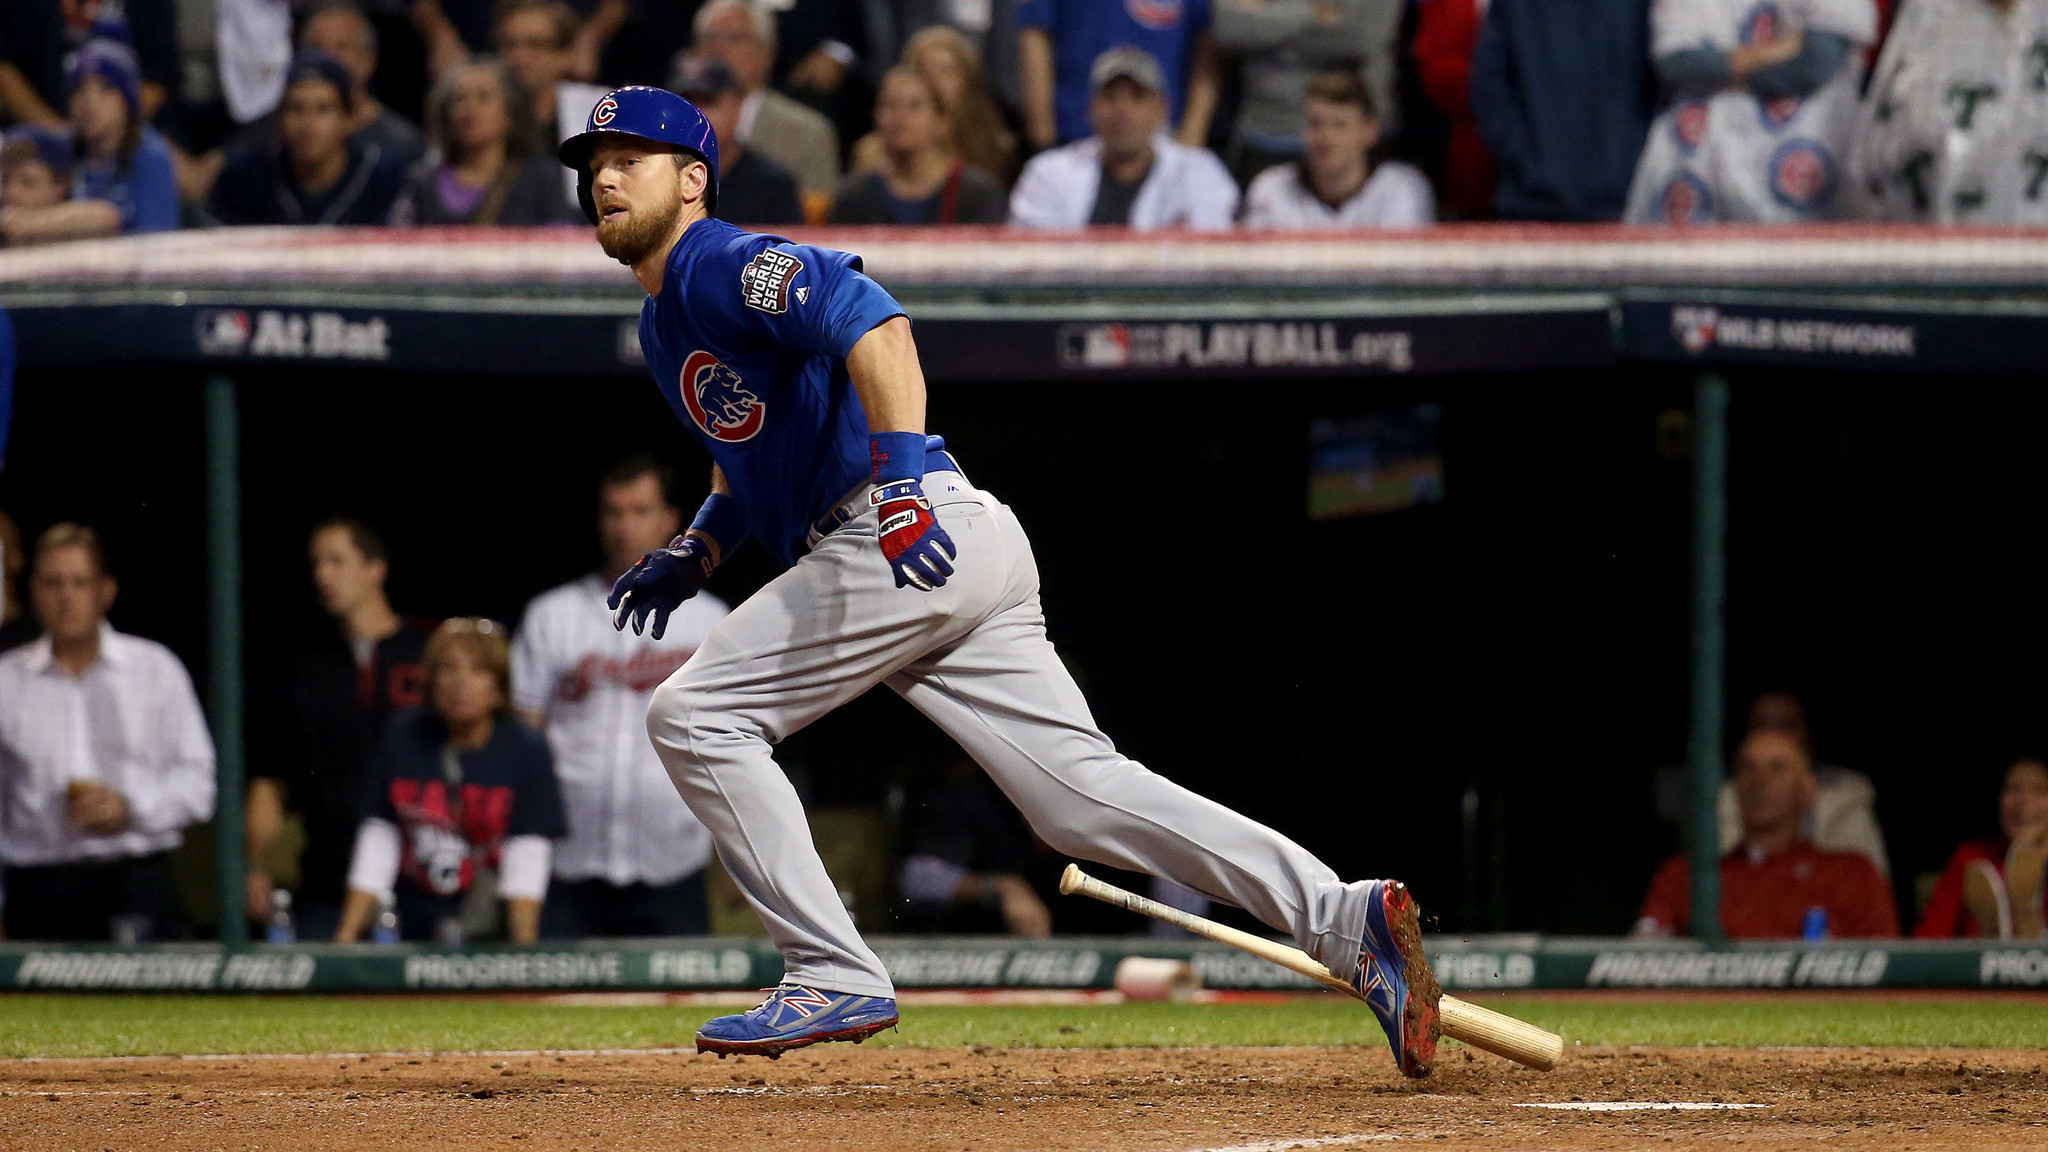 12ee487f3 Ben Zobrist named World Series MVP after go-ahead double in Game 7 -  Chicago Tribune